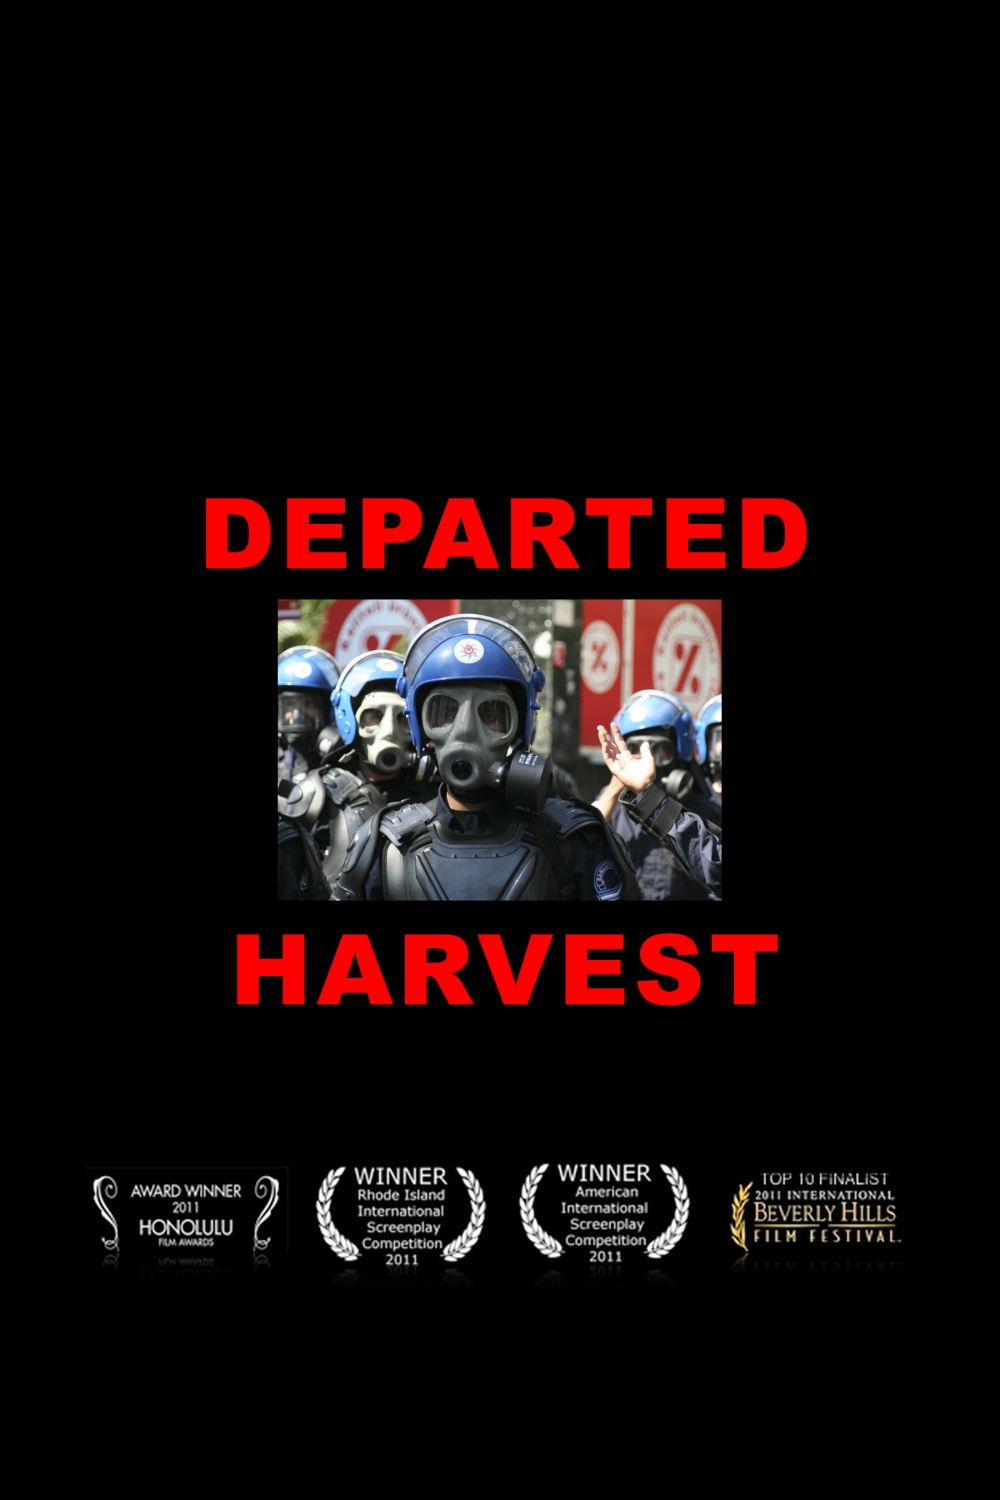 DEPARTED HARVEST POSTER9